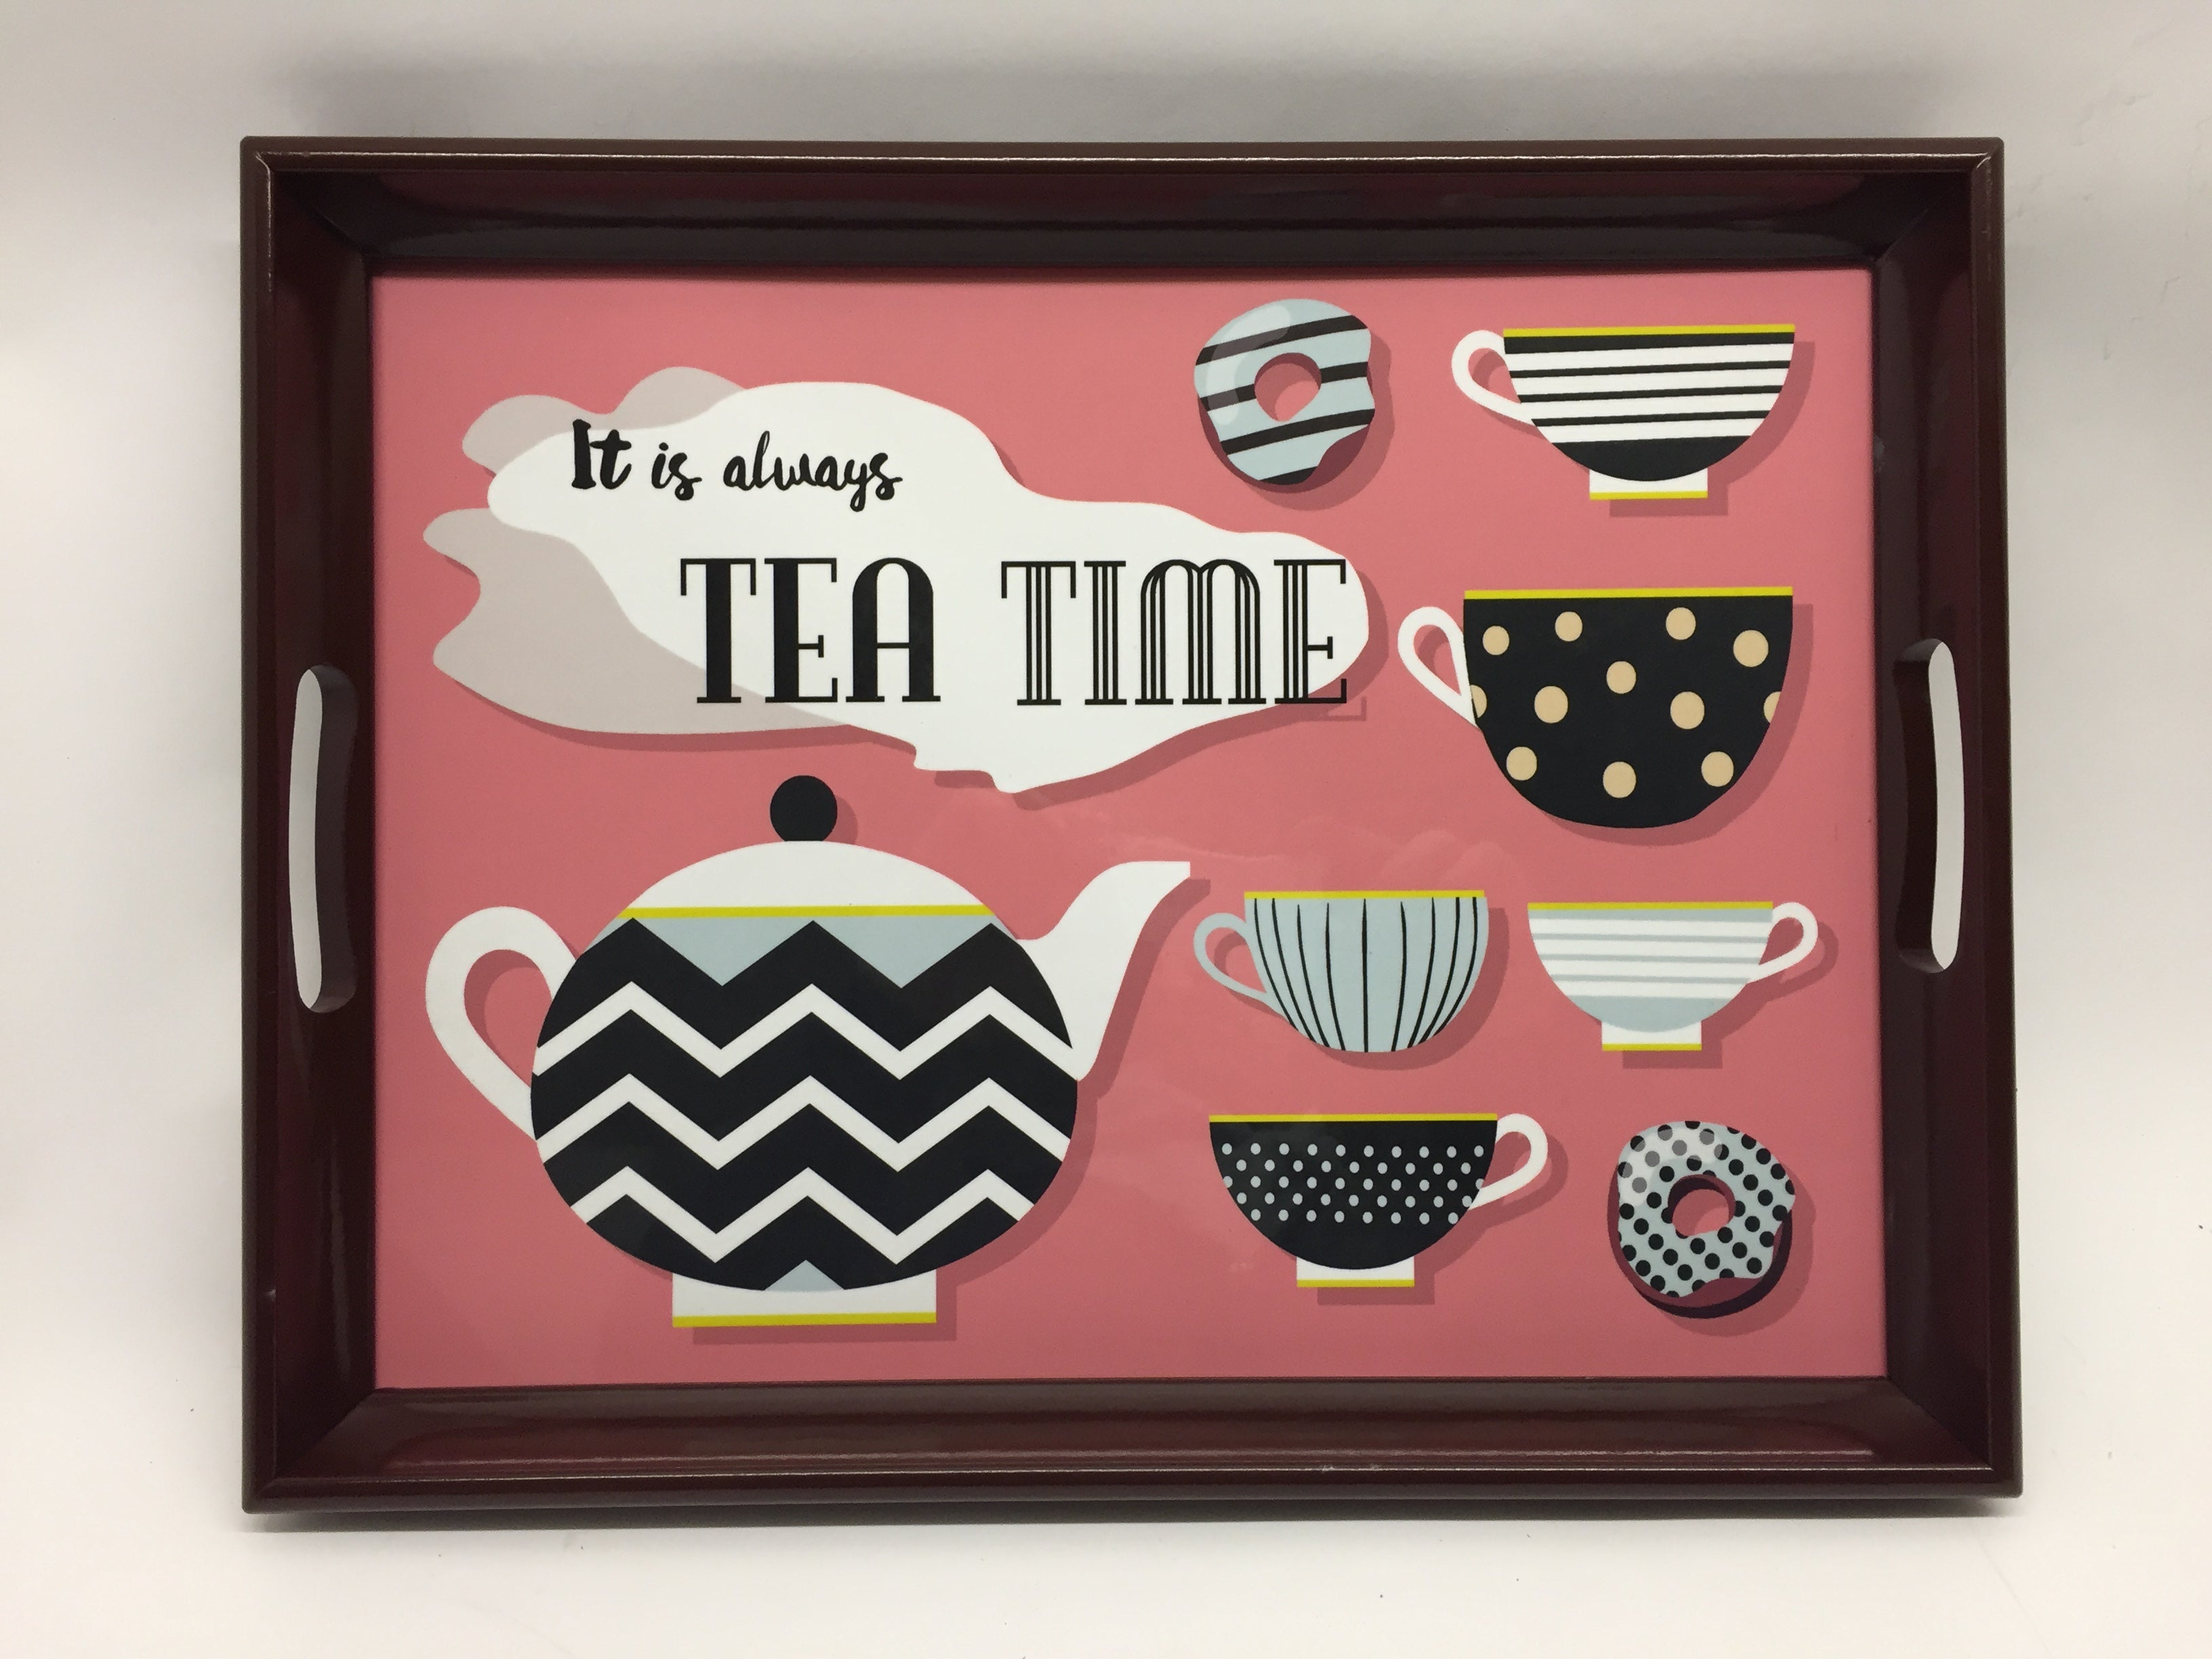 Tea TimeMelamine Based Serving Tray